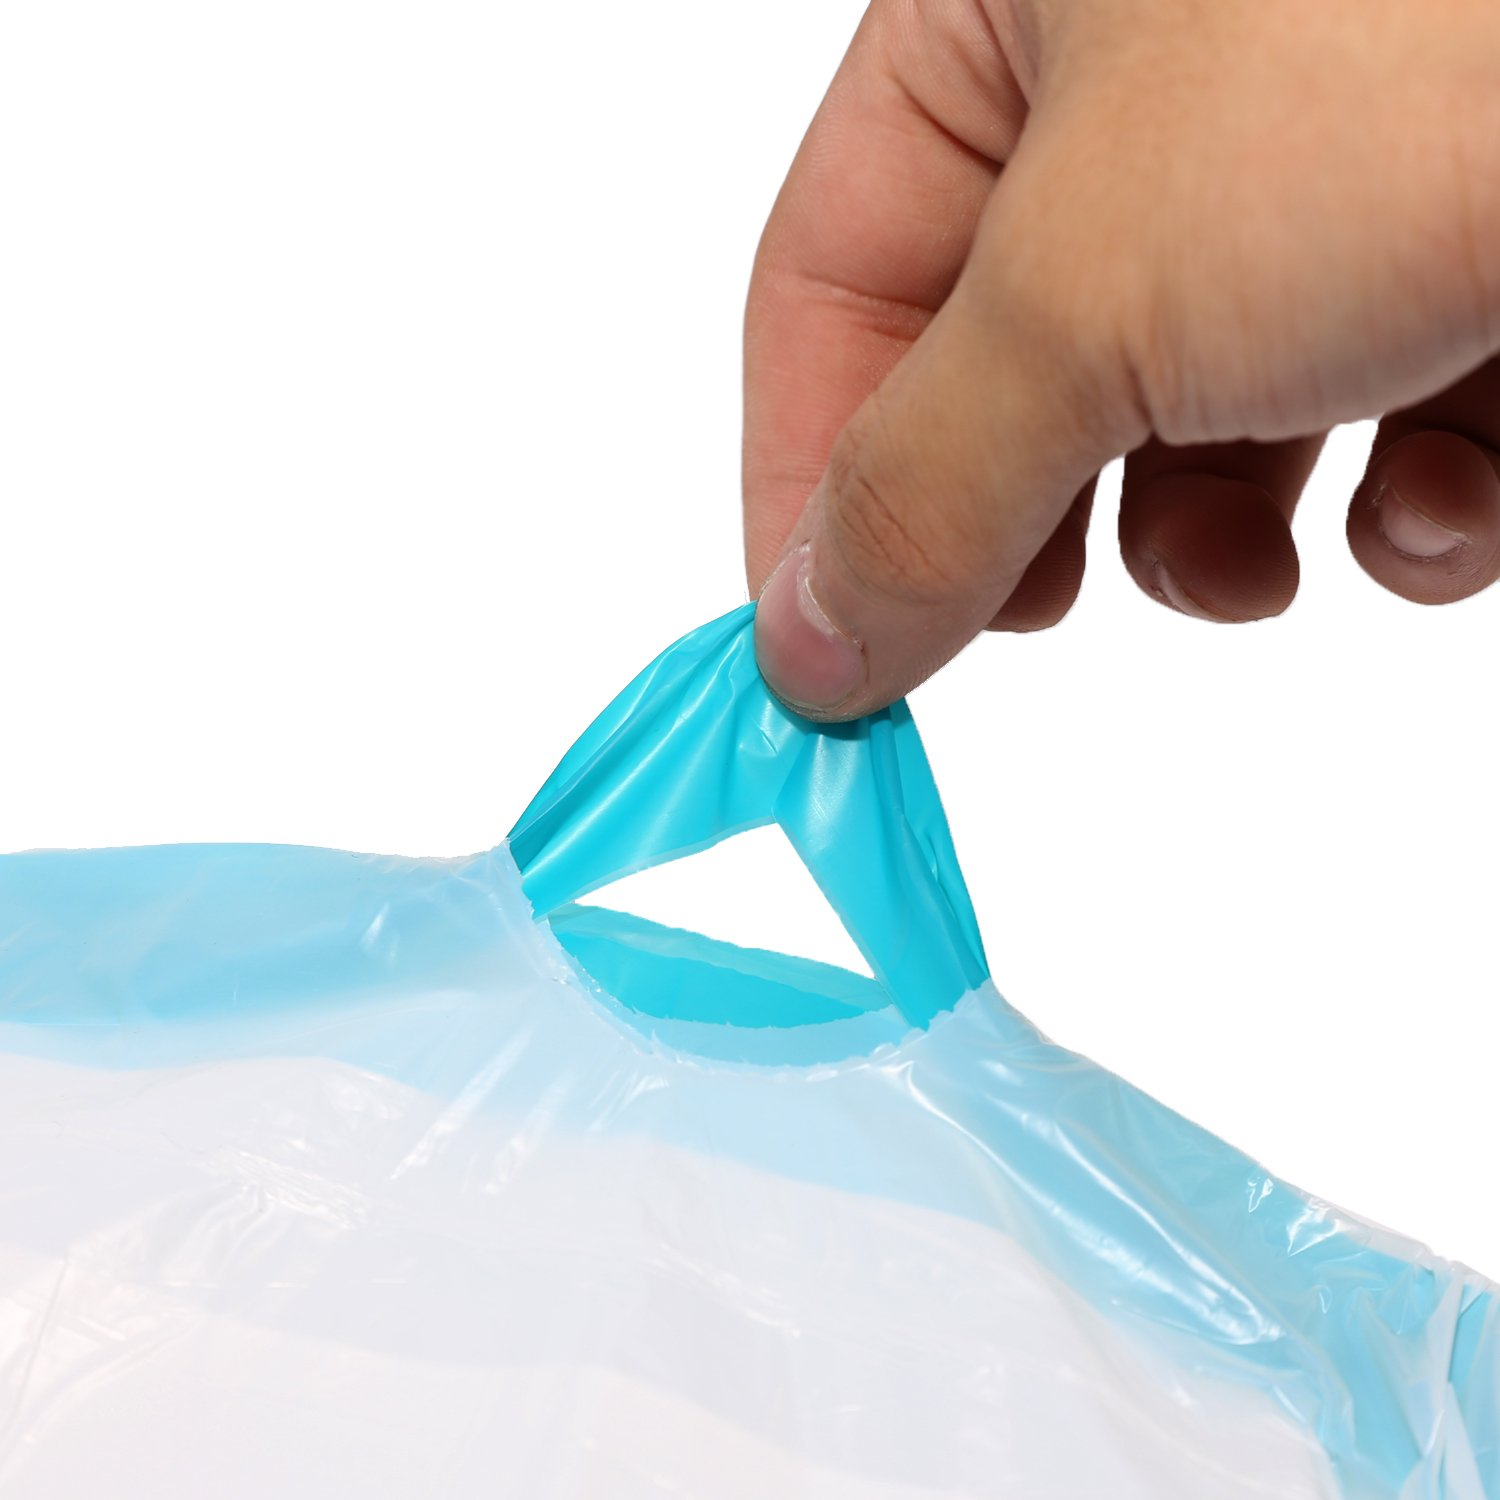 Topgalaxyz 4 Gallon Trash Bag 11 Mil Extra Strong Tissue Air Galon Small Garbage Bags Clear For Bathroom Kitchensize177 X 1968